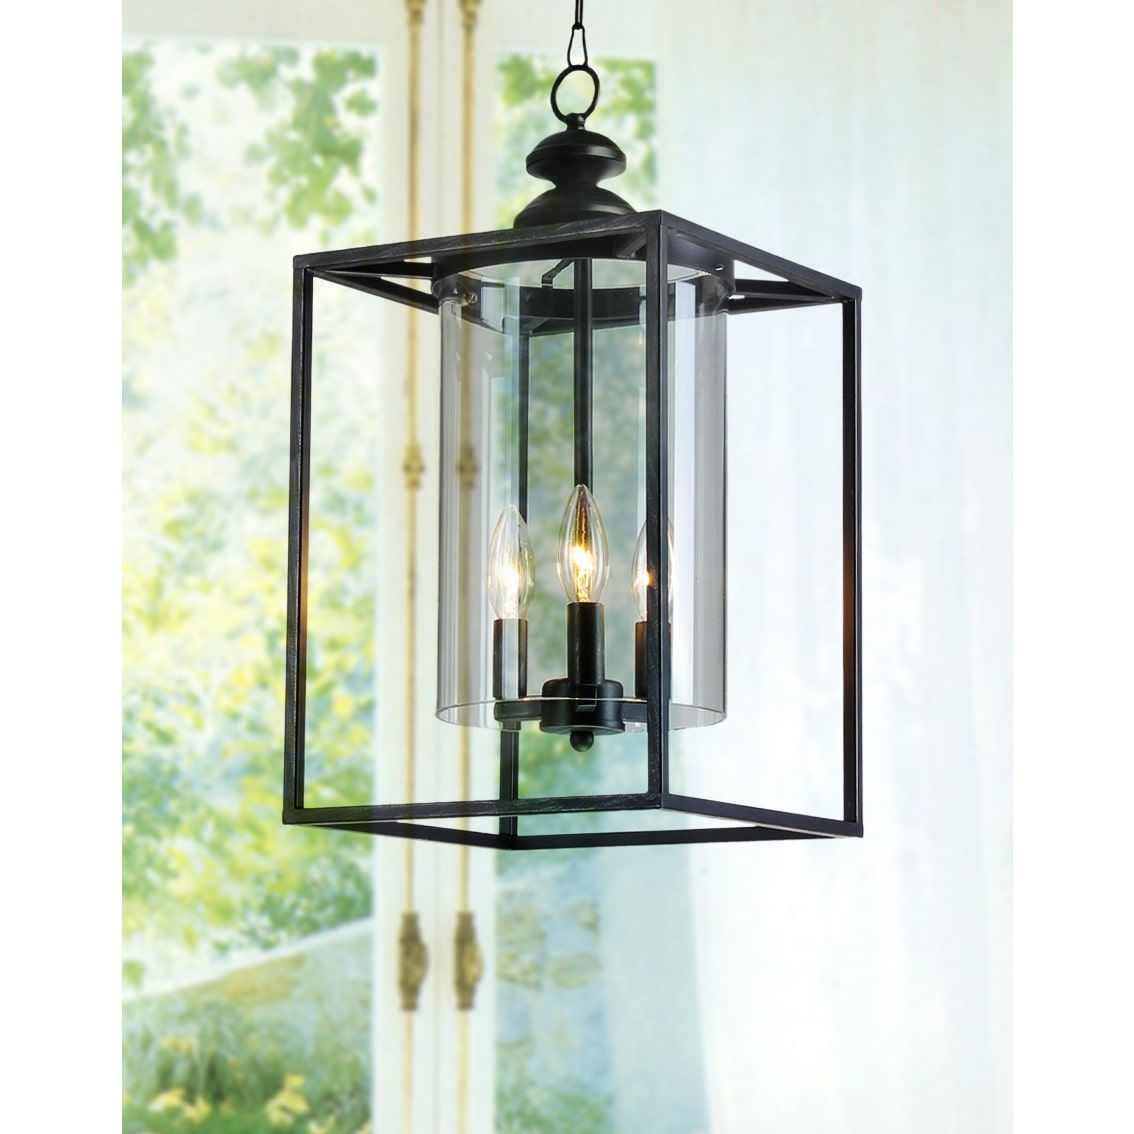 La pedriza antique black 3 light glass and metal chandelier la pedriza antique black 3 light glass and metal chandelier lantern arubaitofo Gallery